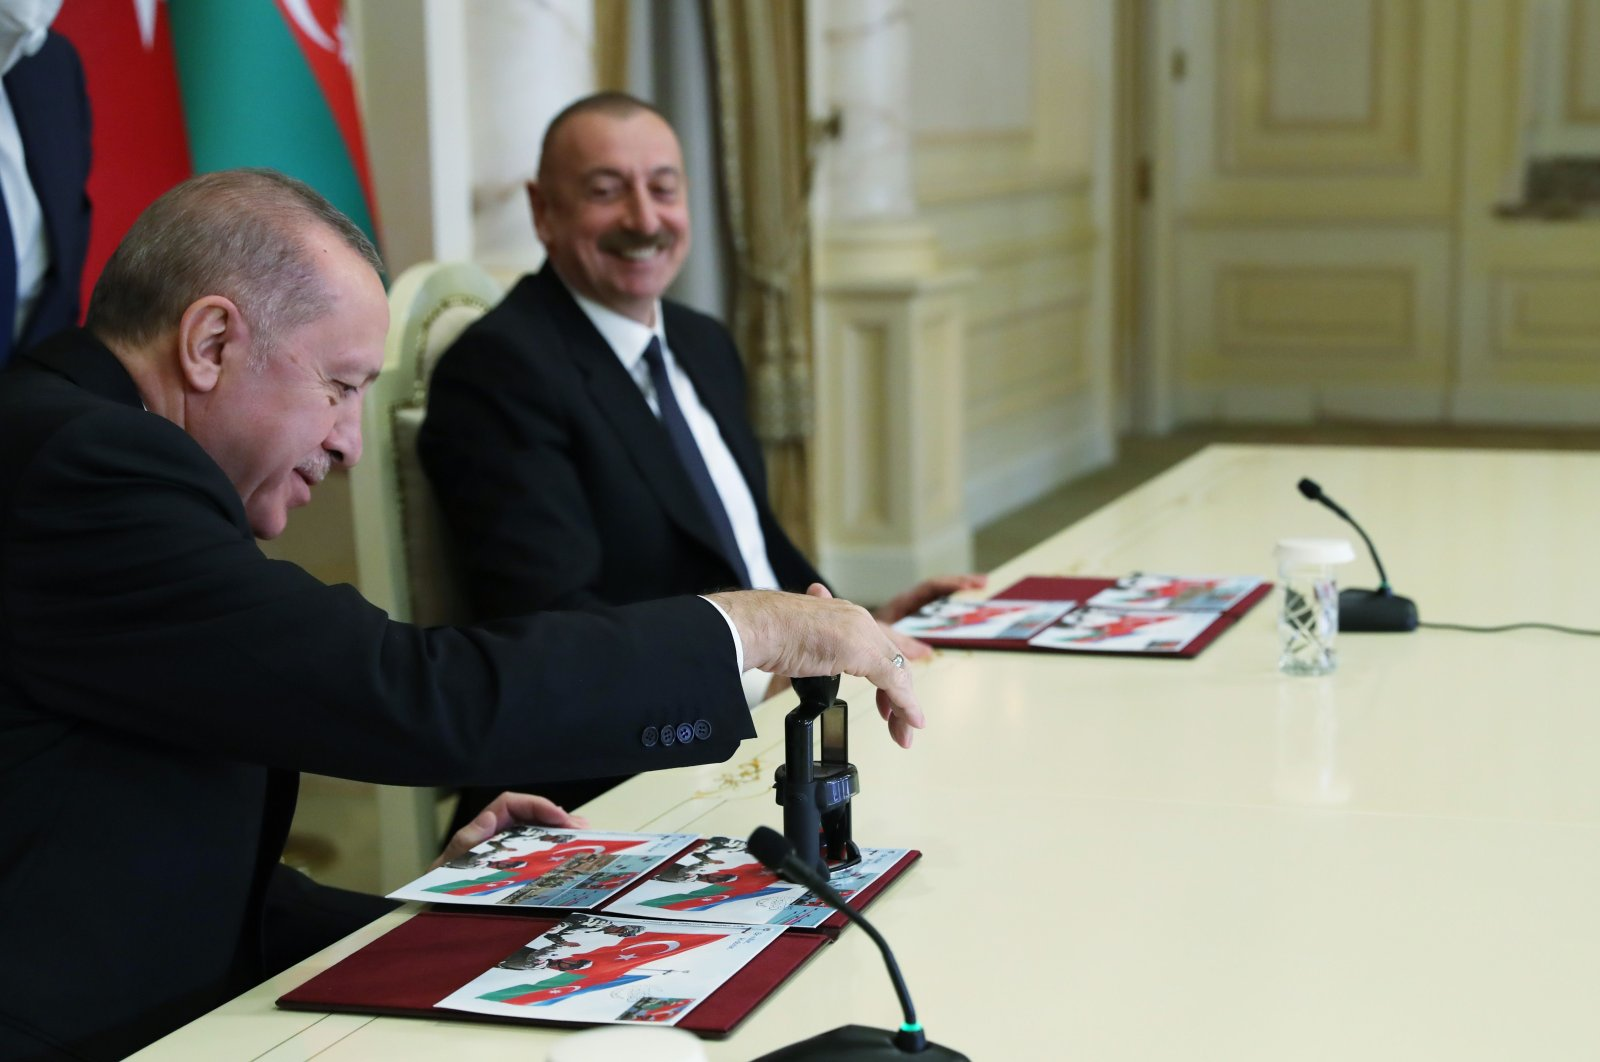 A handout picture taken and released on Dec. 10, 2020, by the Turkish presidential press service shows Turkish President Recep Tayyip Erdoğan and Azerbaijani President Ilham Aliyev holding a news conference following their meeting in Baku, Azerbaijan. (AFP Photo)